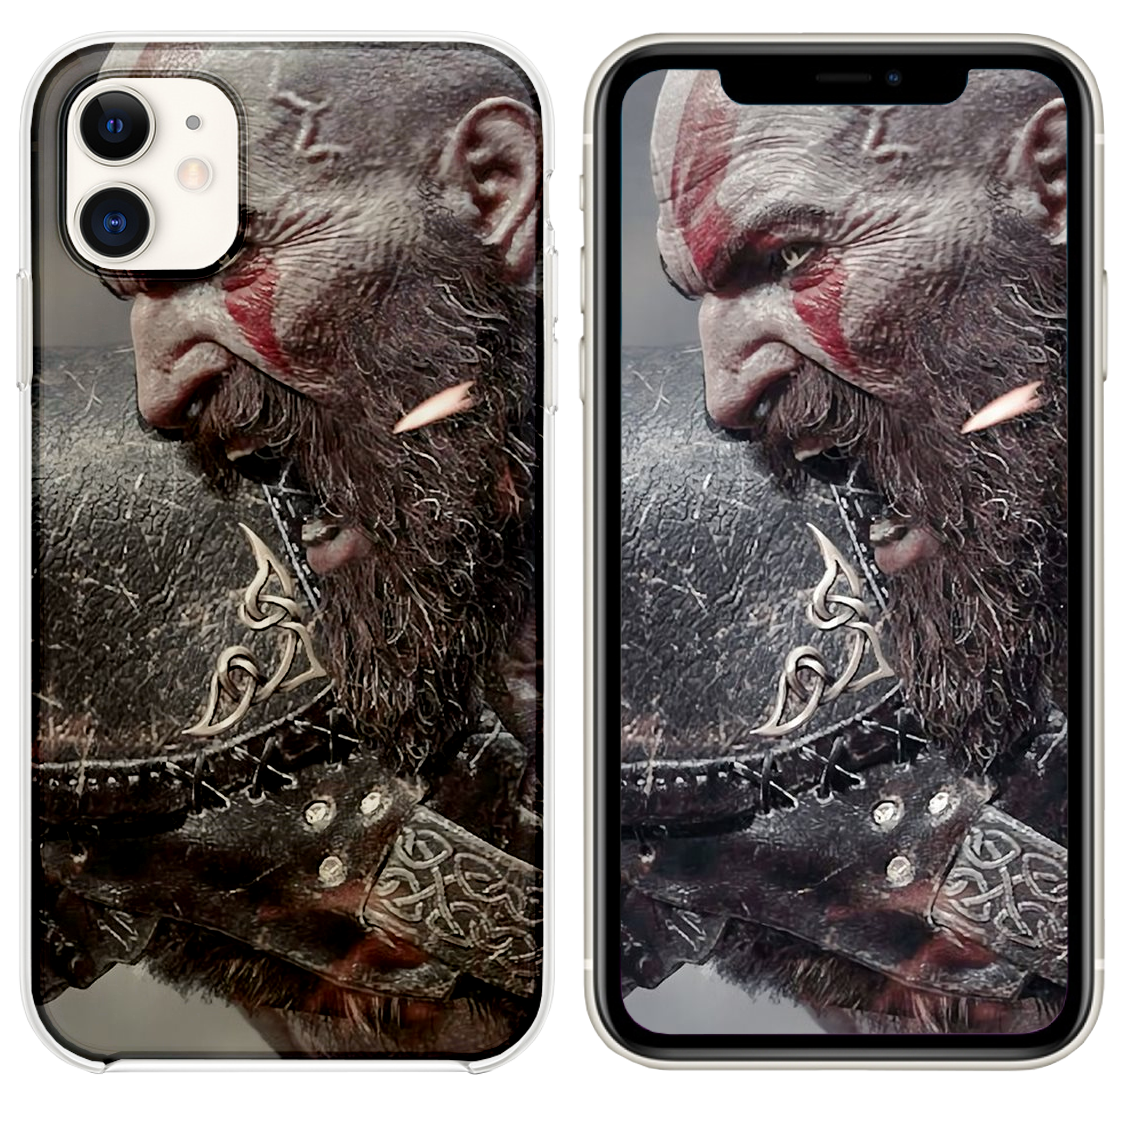 Kratos Digital Art 4k Iphone 11 Case And Wallpaper Iphone 11 Iphone Iphone Cover